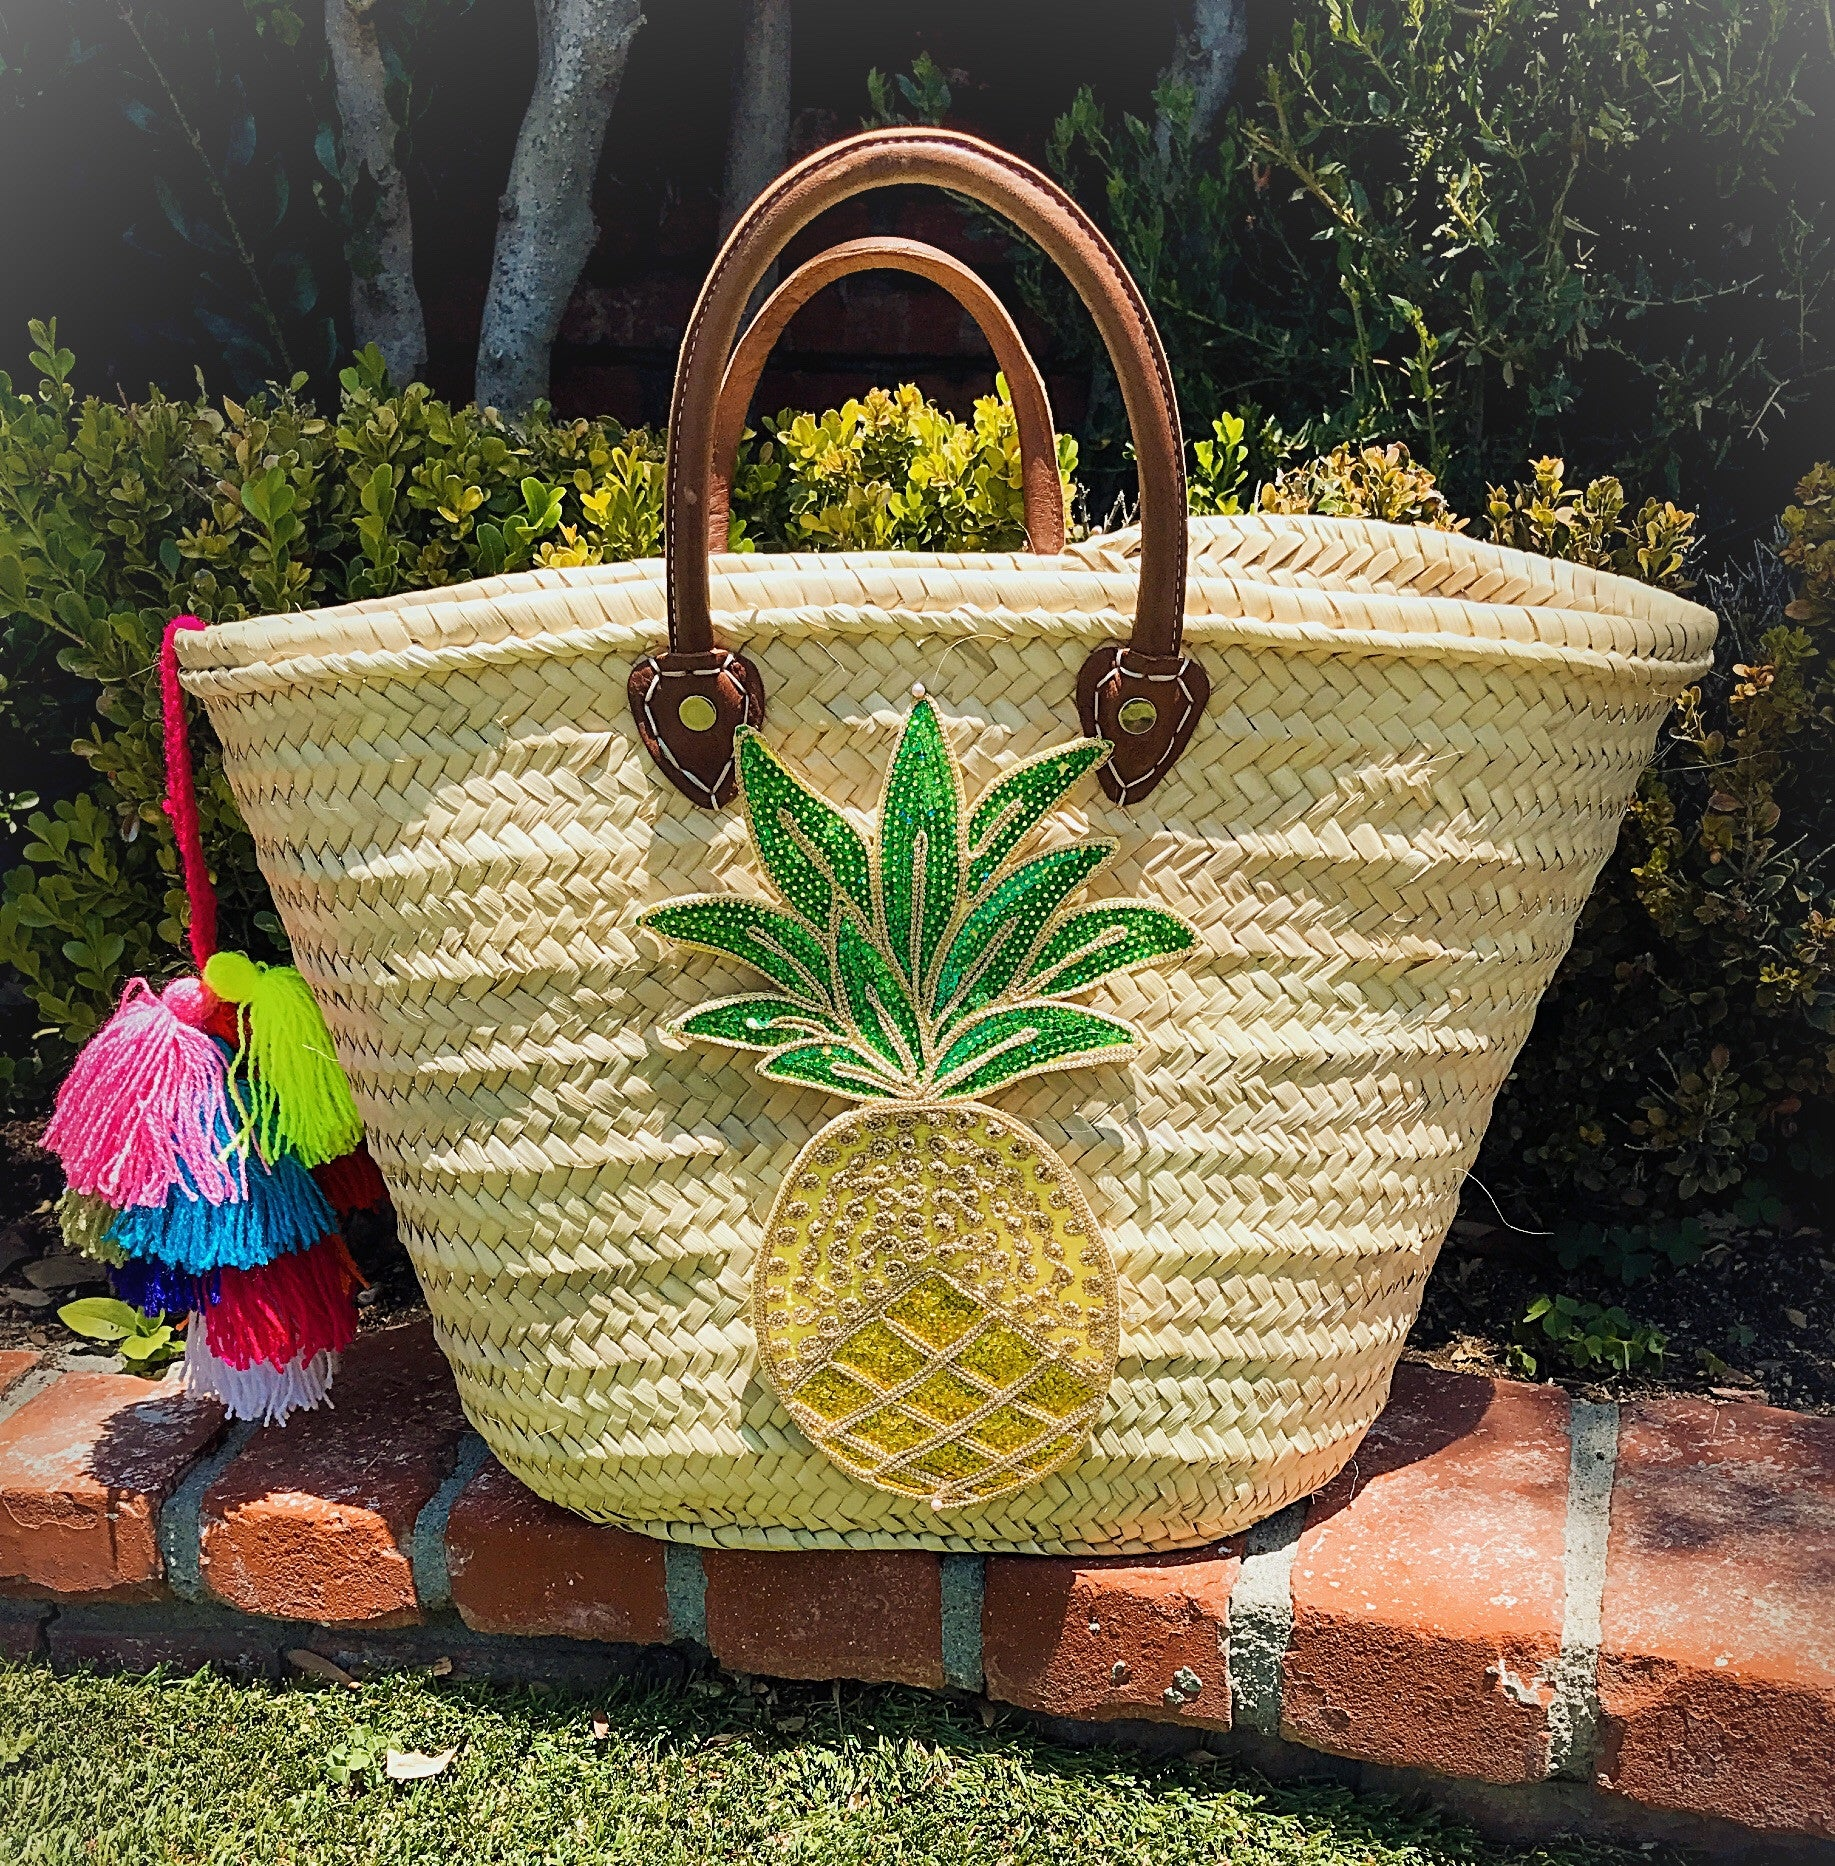 The Woven Pineapple